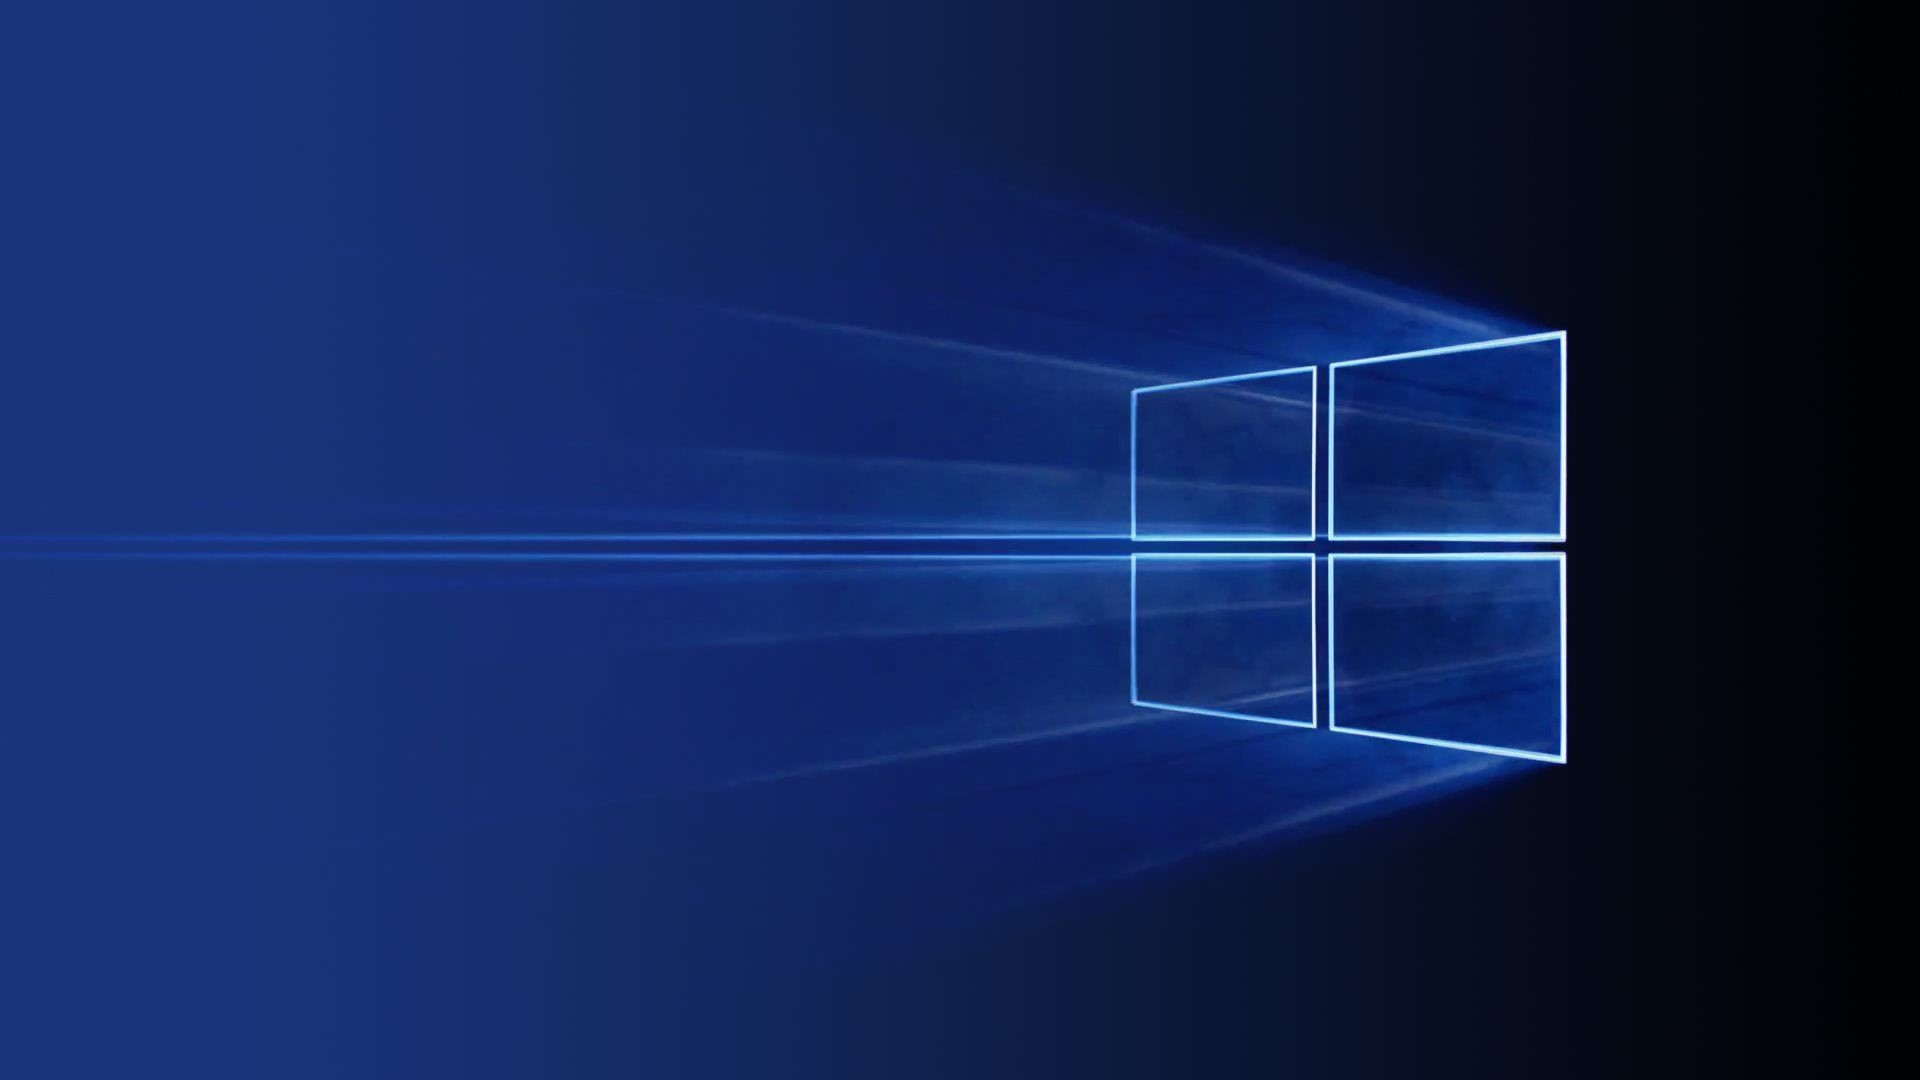 1920x1080 Microsoft Free Backgrounds Wallpaper